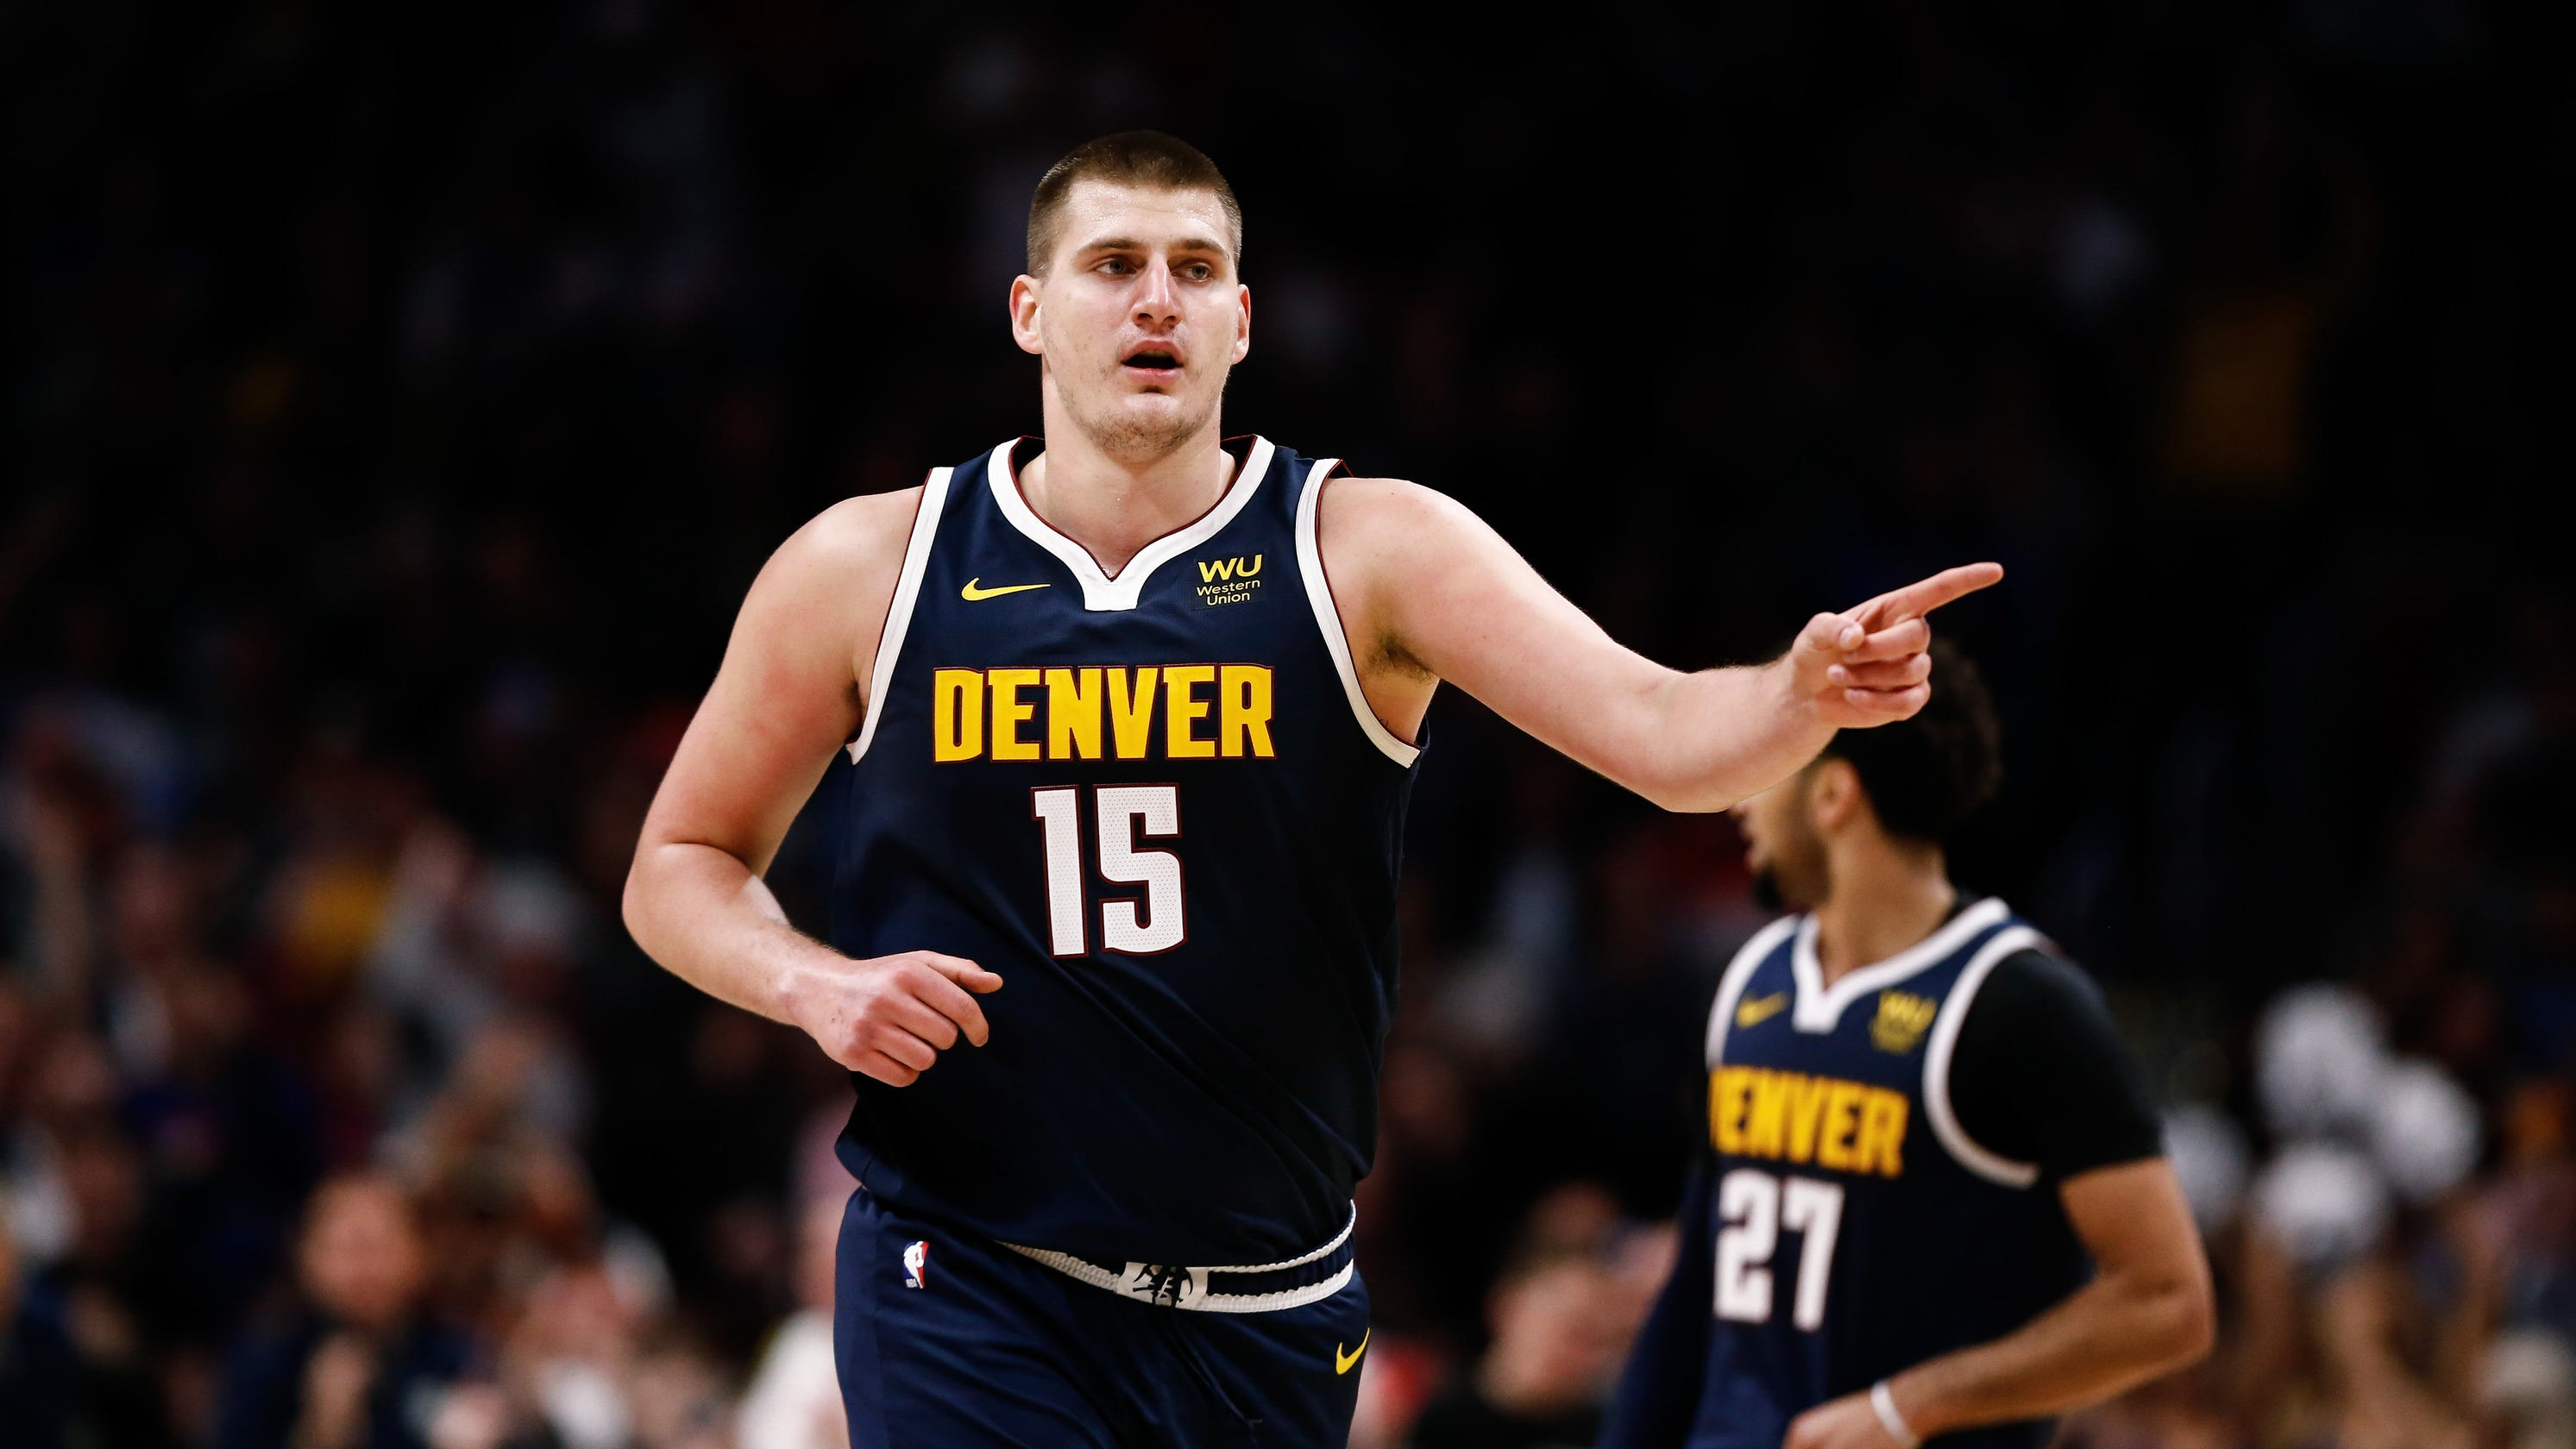 Denver Nuggets star Nikola Jokic among NBA players to test positive for COVID-19 - USA TODAY thumbnail